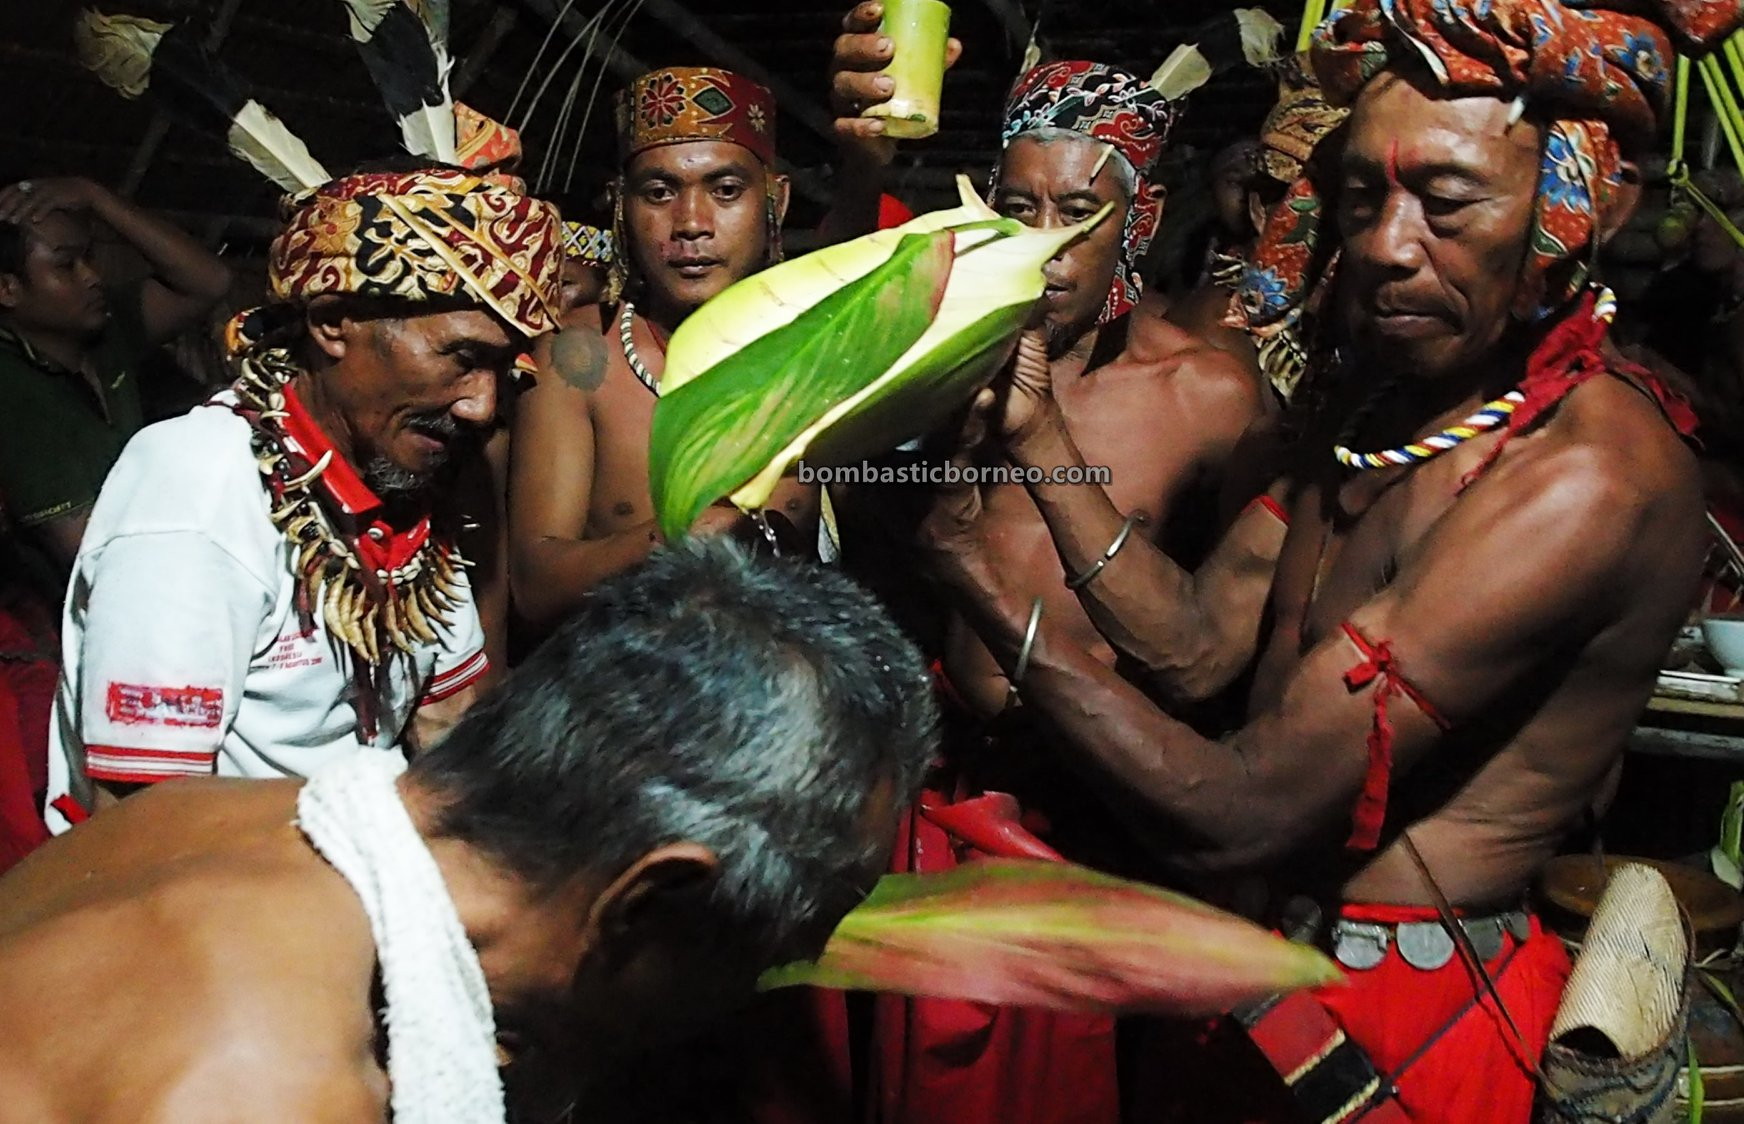 Nyobeng Gawai, Harvest Festival, authentic, backpackers, culture, ritual, West Kalimantan, native, tribal, wisata budaya, Tourism, travel guide, Trans Borneo, 西加里曼丹土著部落, 印尼比达友丰收节日, 婆罗洲原住民文化